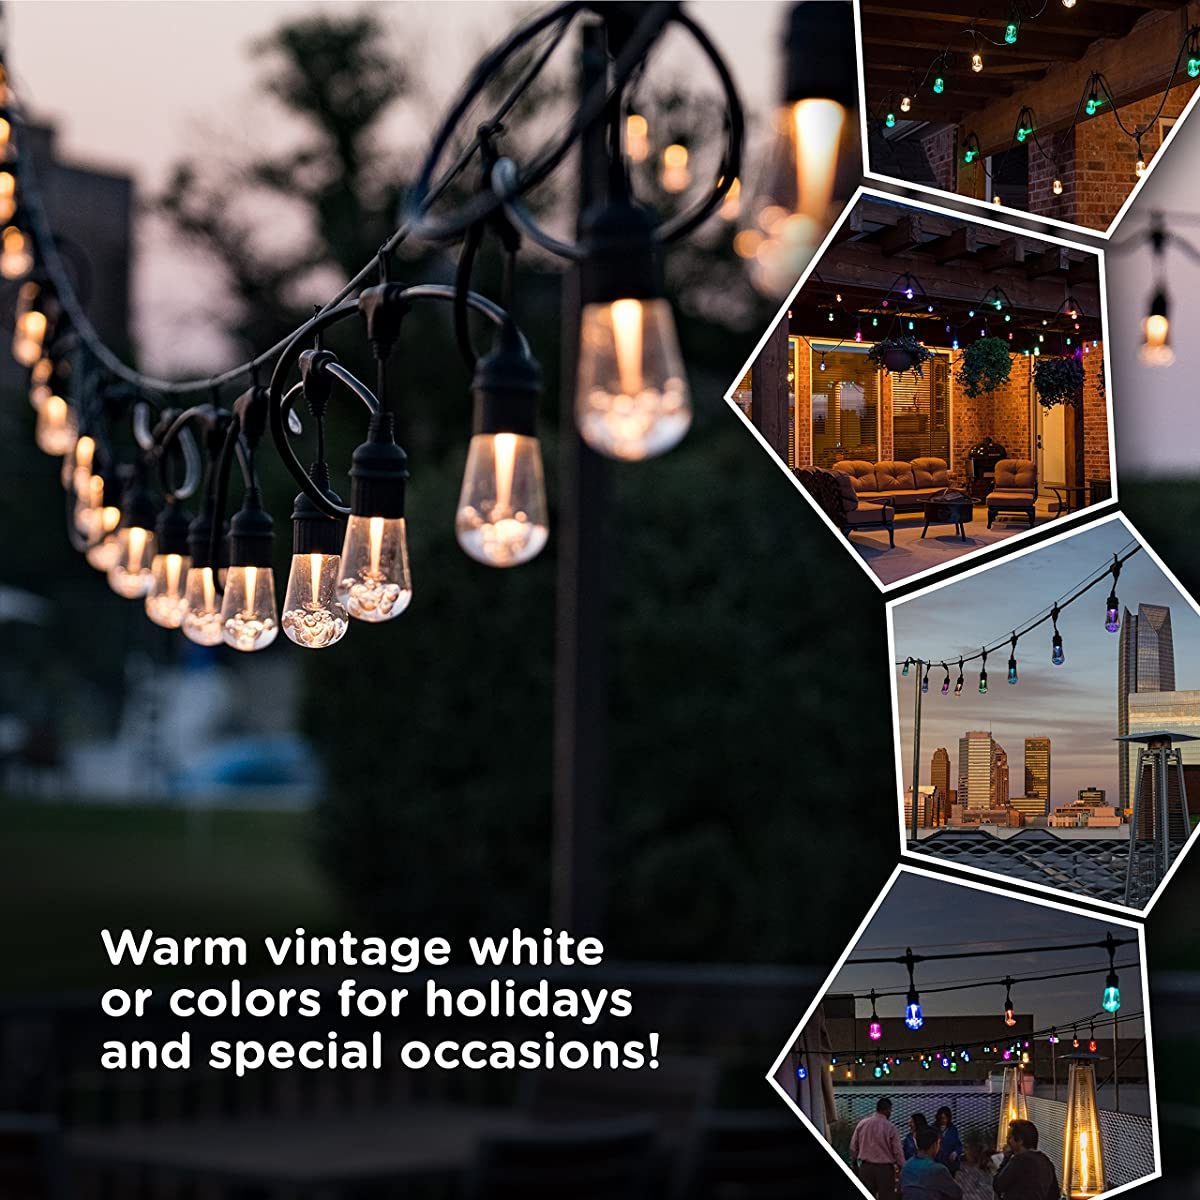 Enbrighten Vintage Seasons LED Warm White & Color Changing Café String Lights, Black, 48ft., 24 Premium Impact Resistant Lifetime Bulbs, Wireless, Weatherproof, Indoor/Outdoor, Commercial Grade, 37790